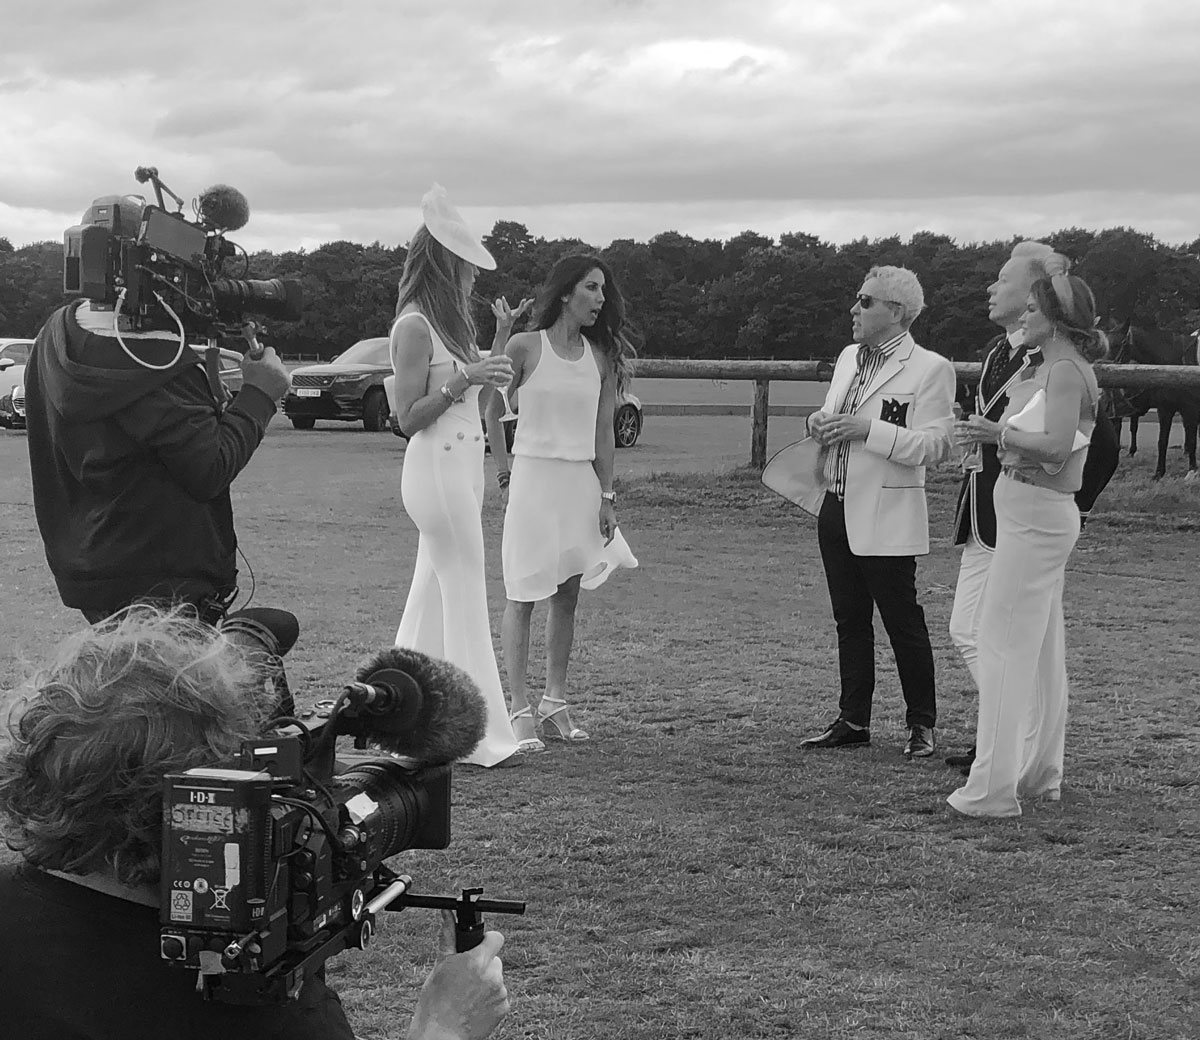 Herongrange Provides Security Services to Real Housewives of Cheshire